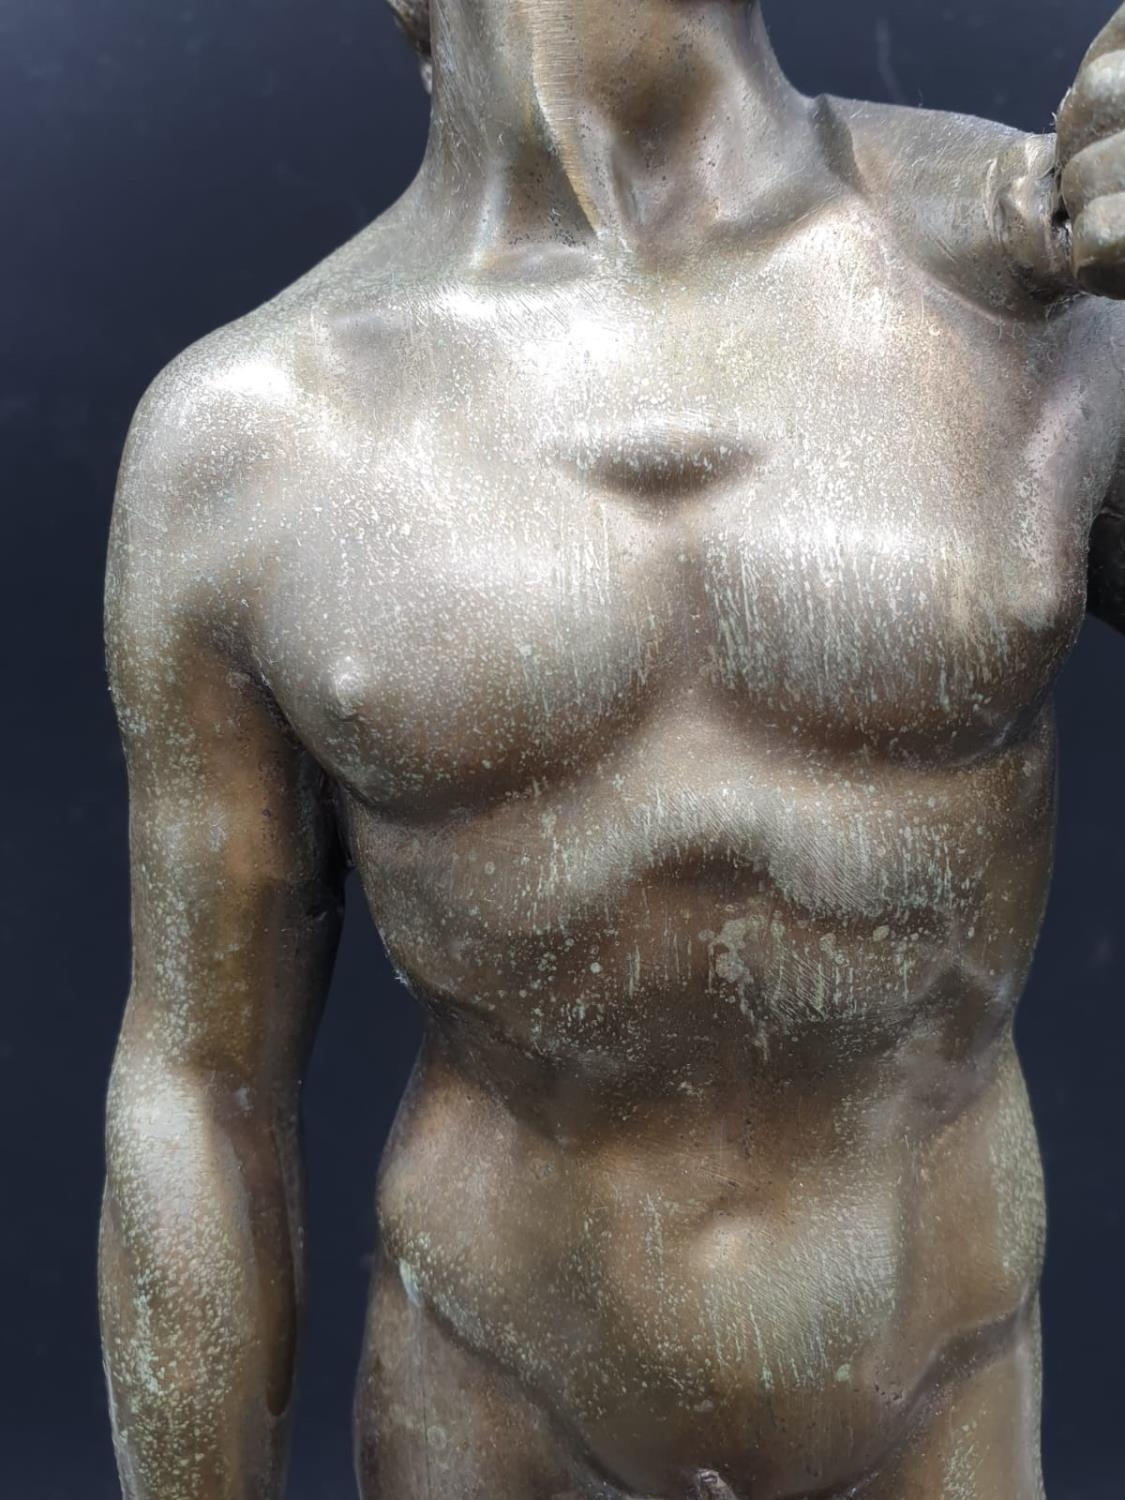 A Statue of Michelangelo's David in Brass on a Marble Base 40cms Tall 3.6kg - Image 8 of 9